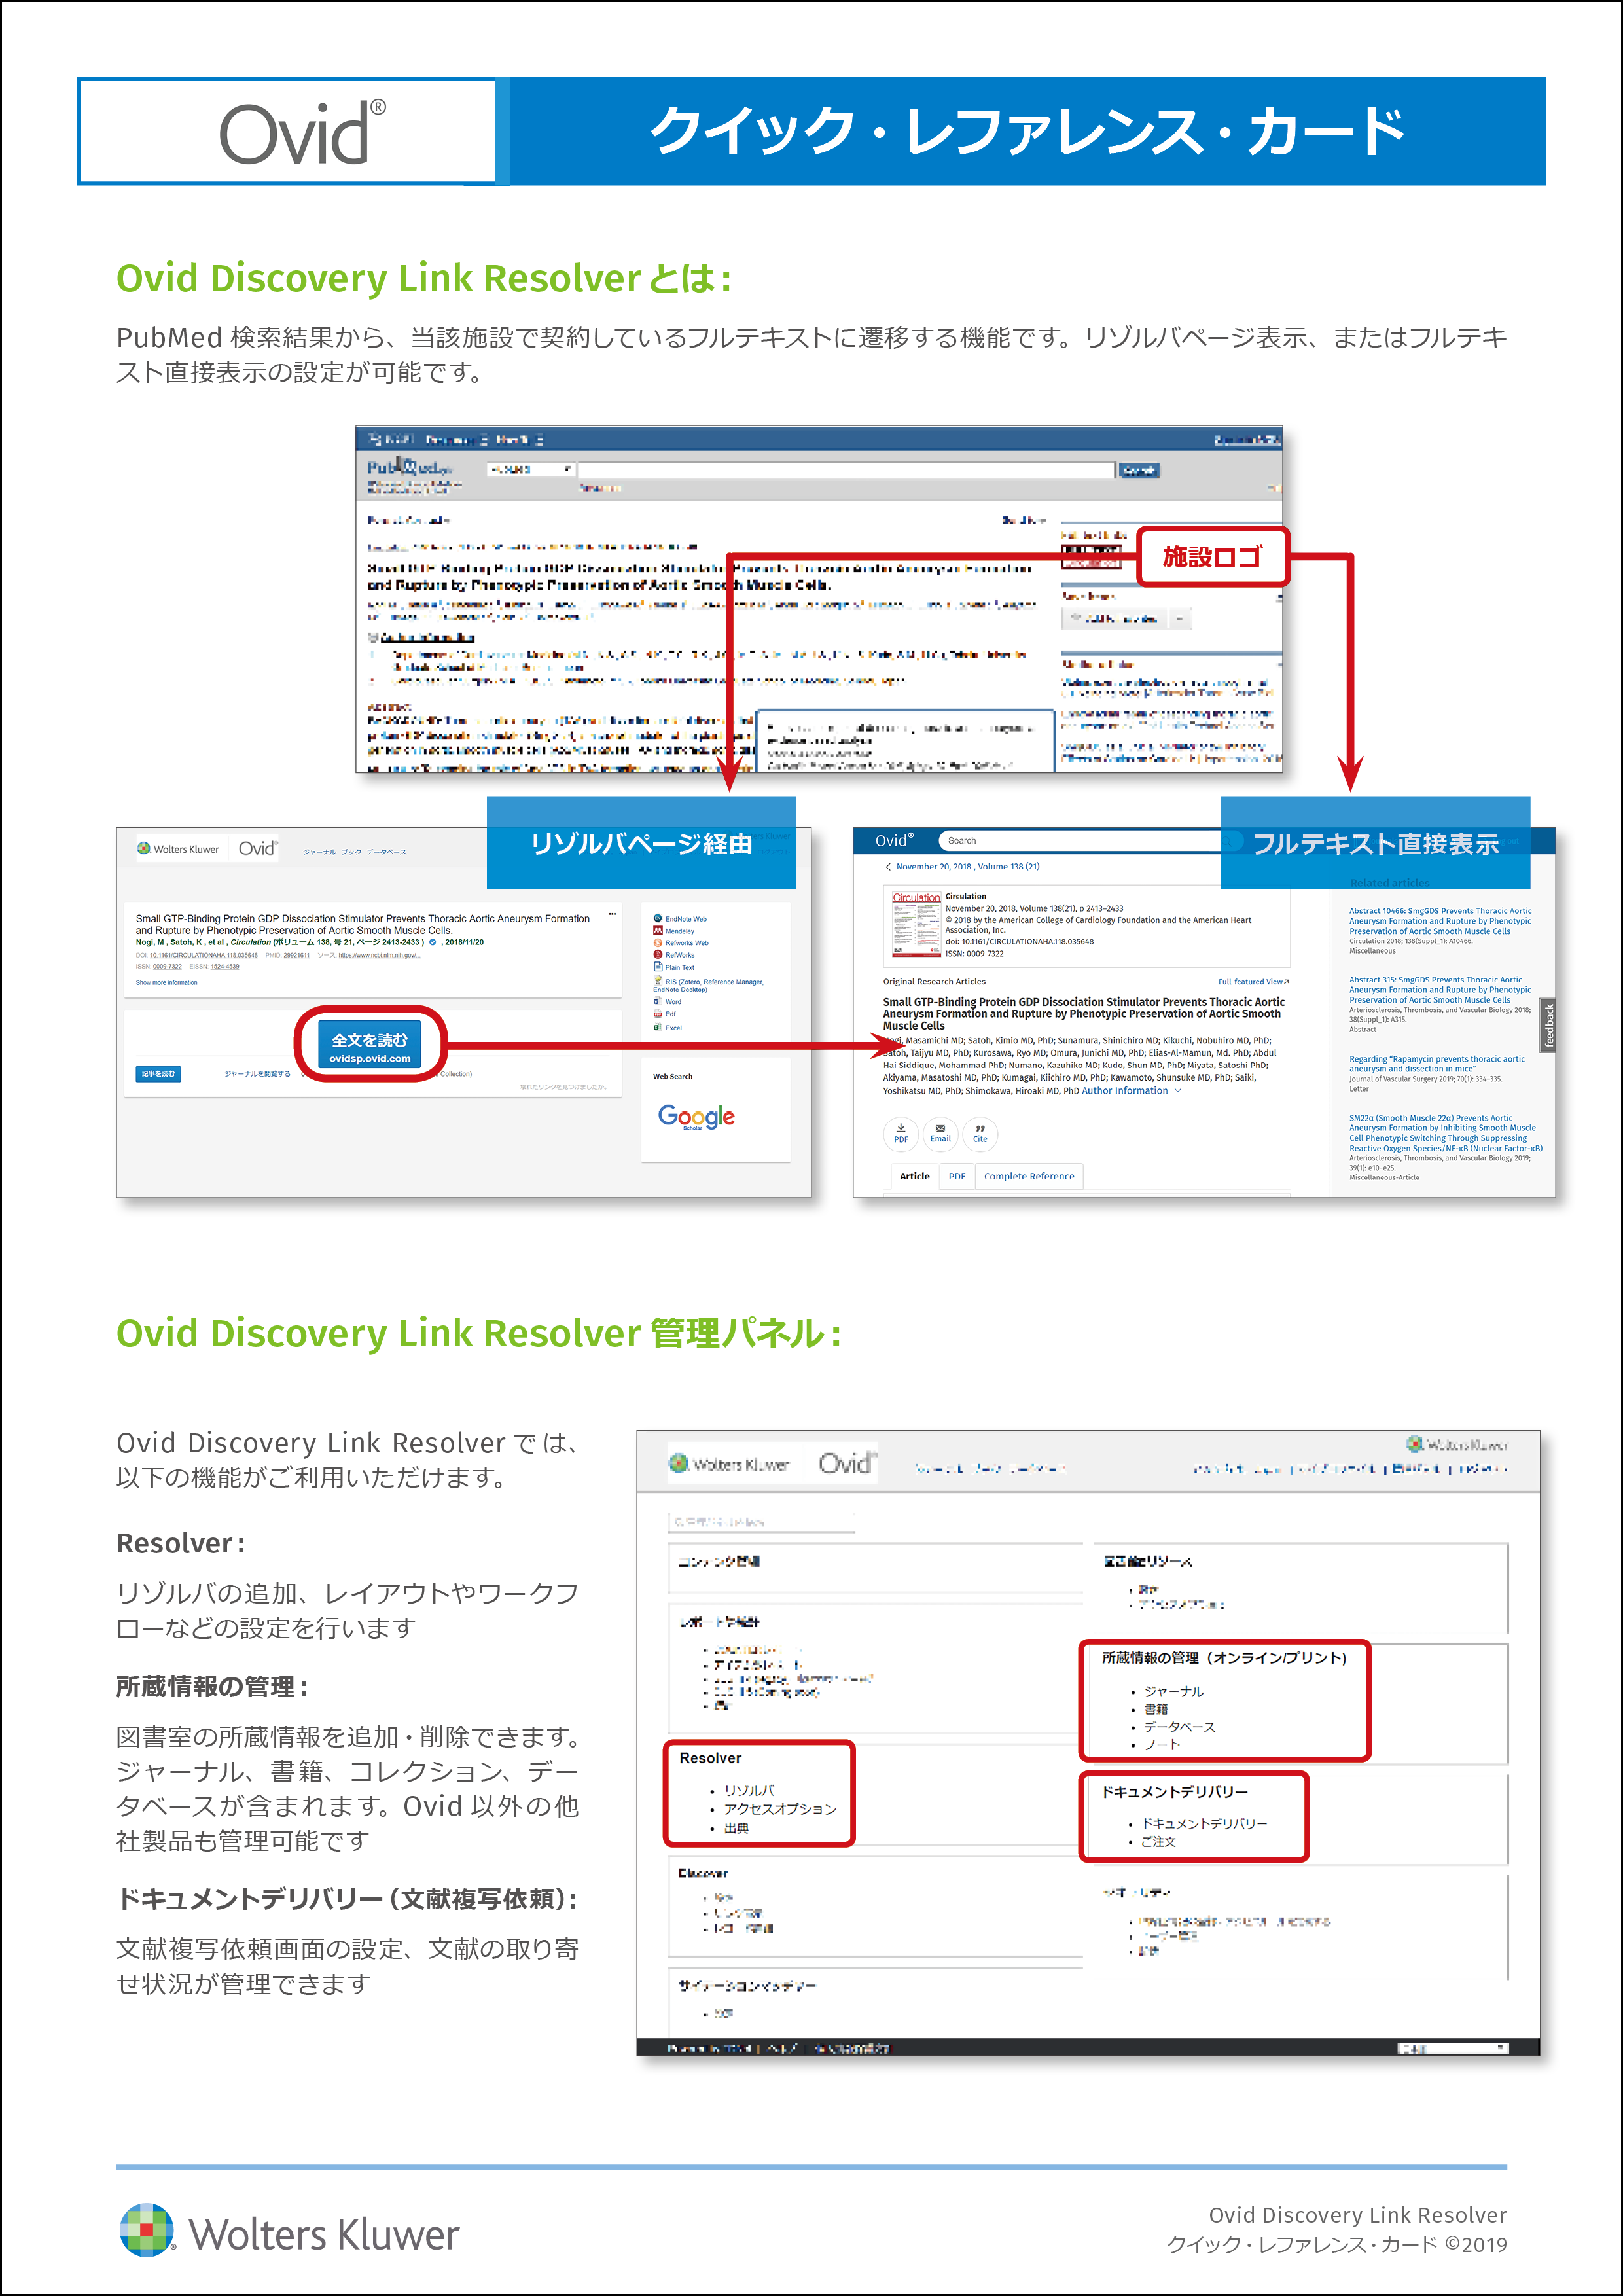 Thumbnail of Ovid Discovery Link Resolver Quick Reference Card